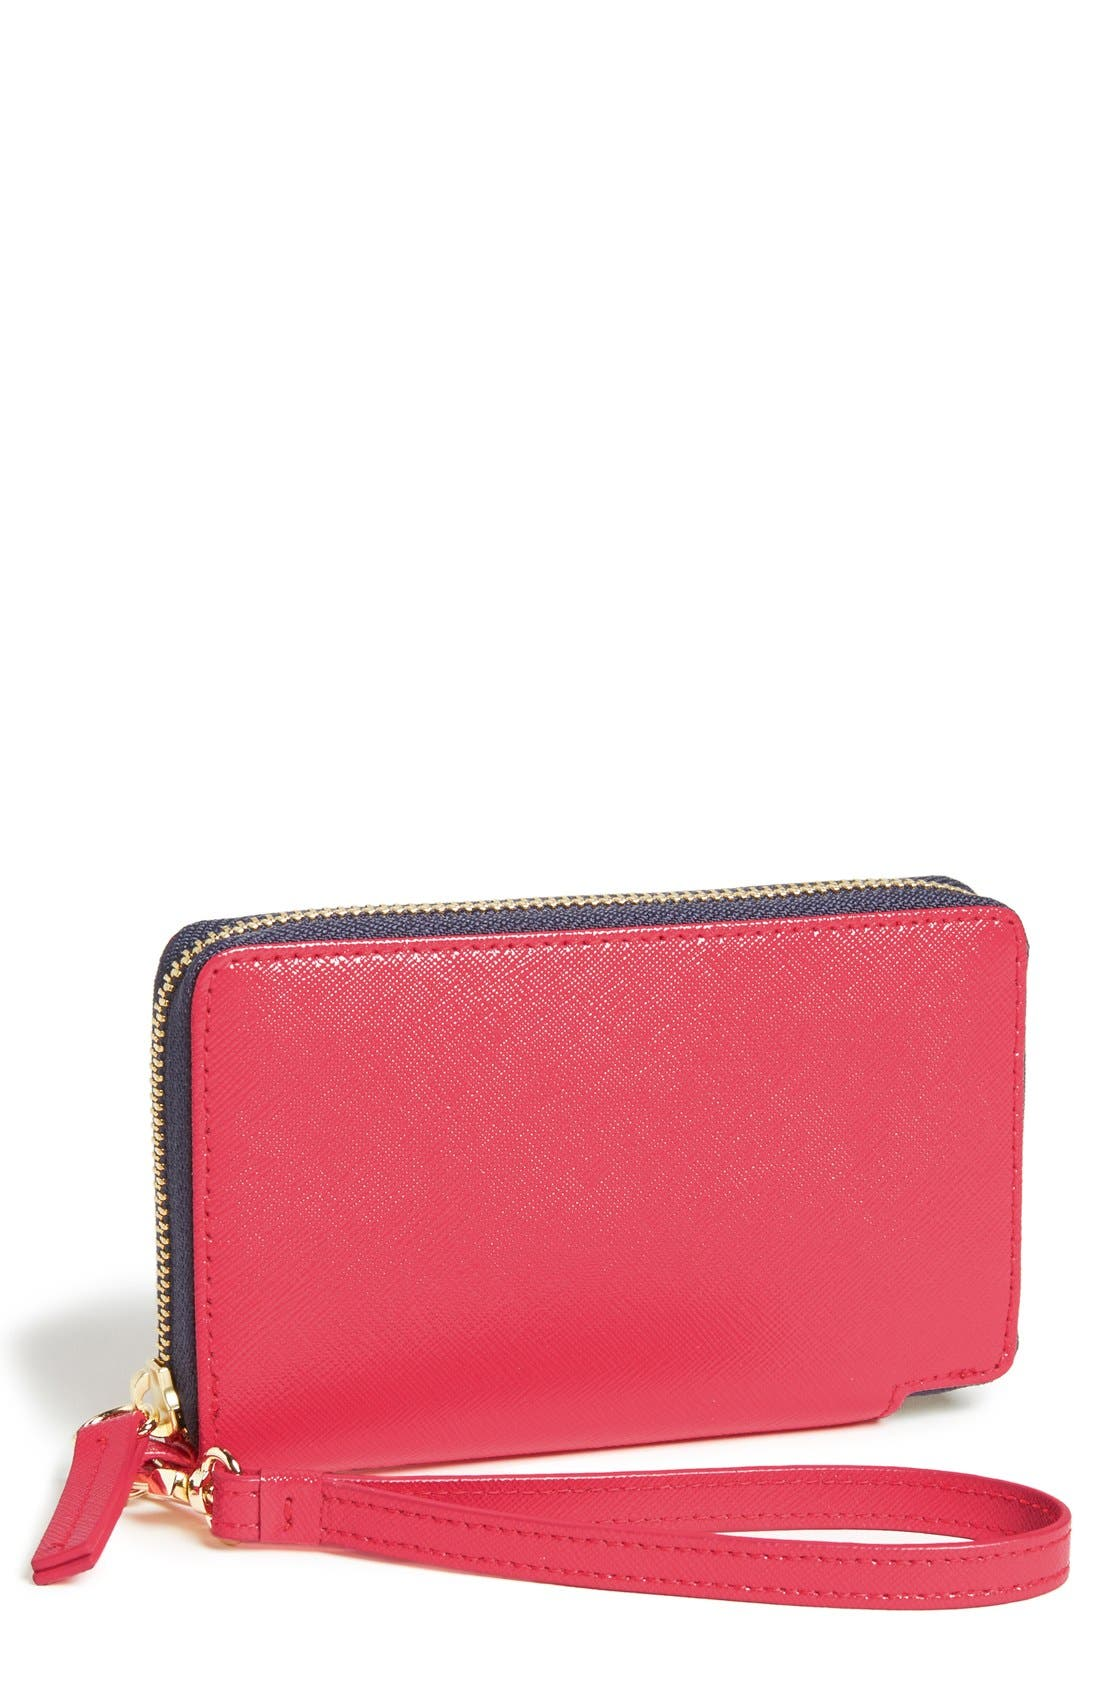 Alternate Image 1 Selected - Halogen® 'Cassie' Saffiano Leather Phone Wallet